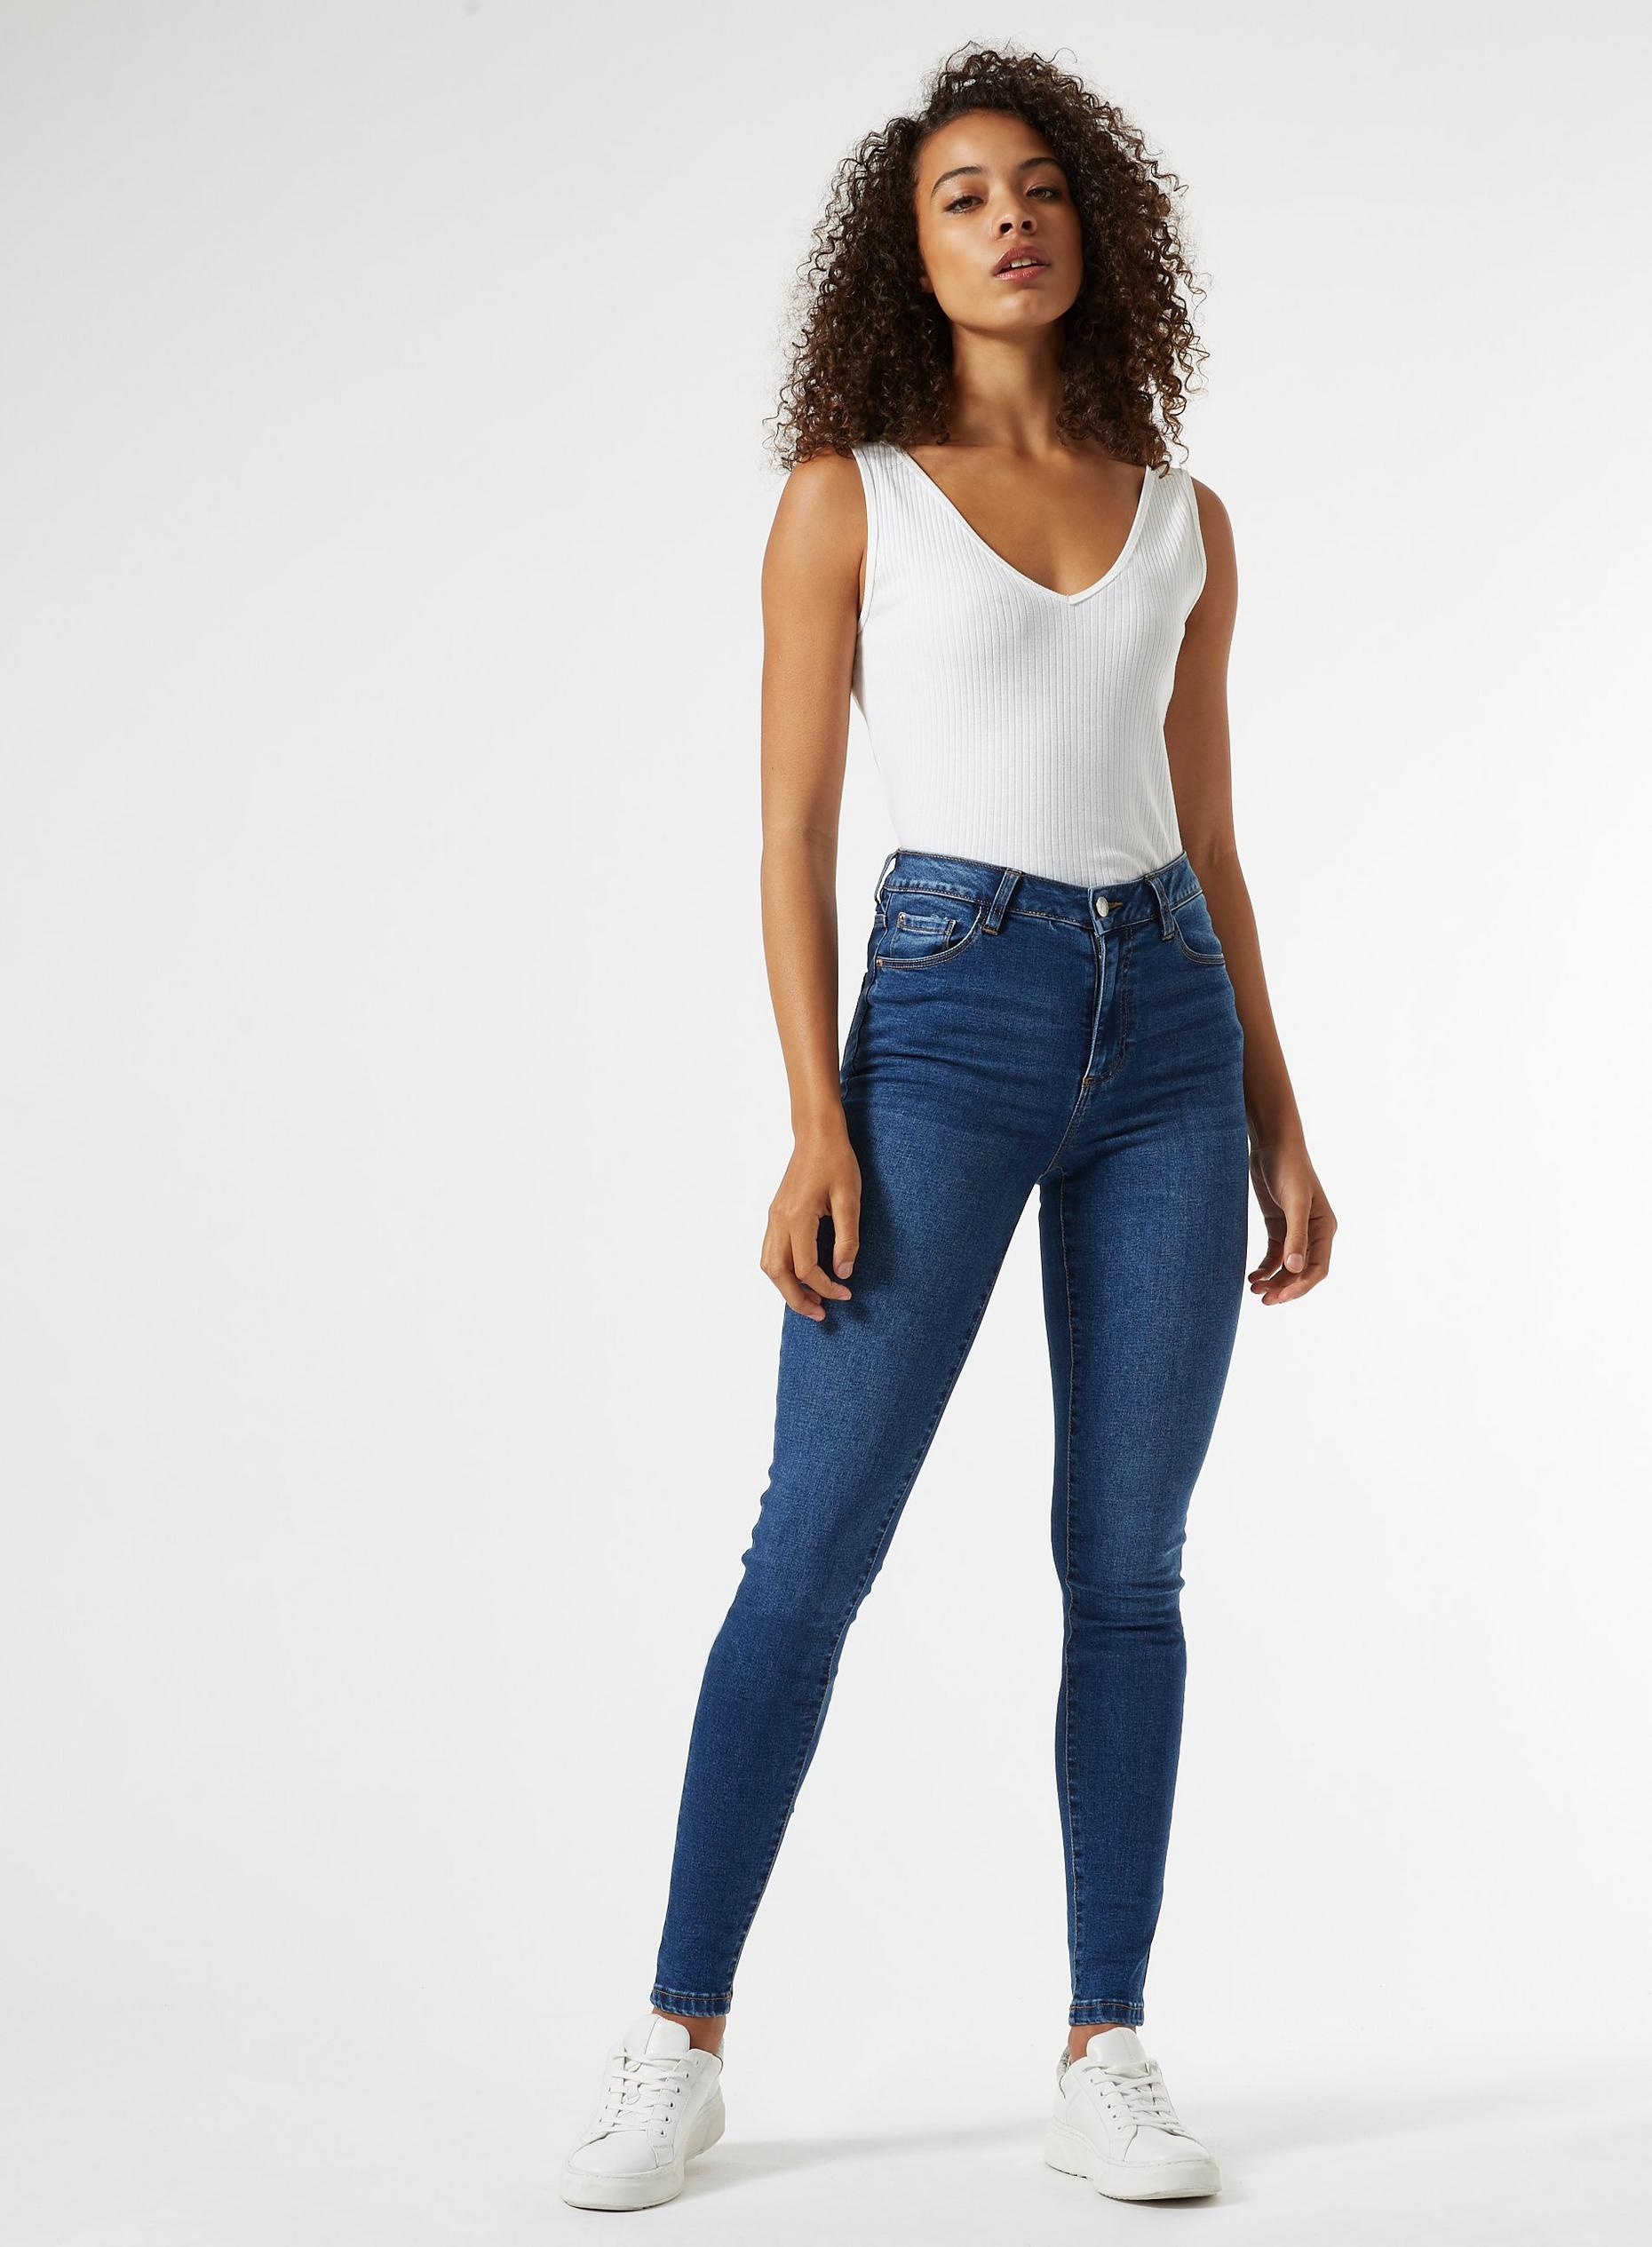 Indigo Blue 'Alex' Denim Jeans